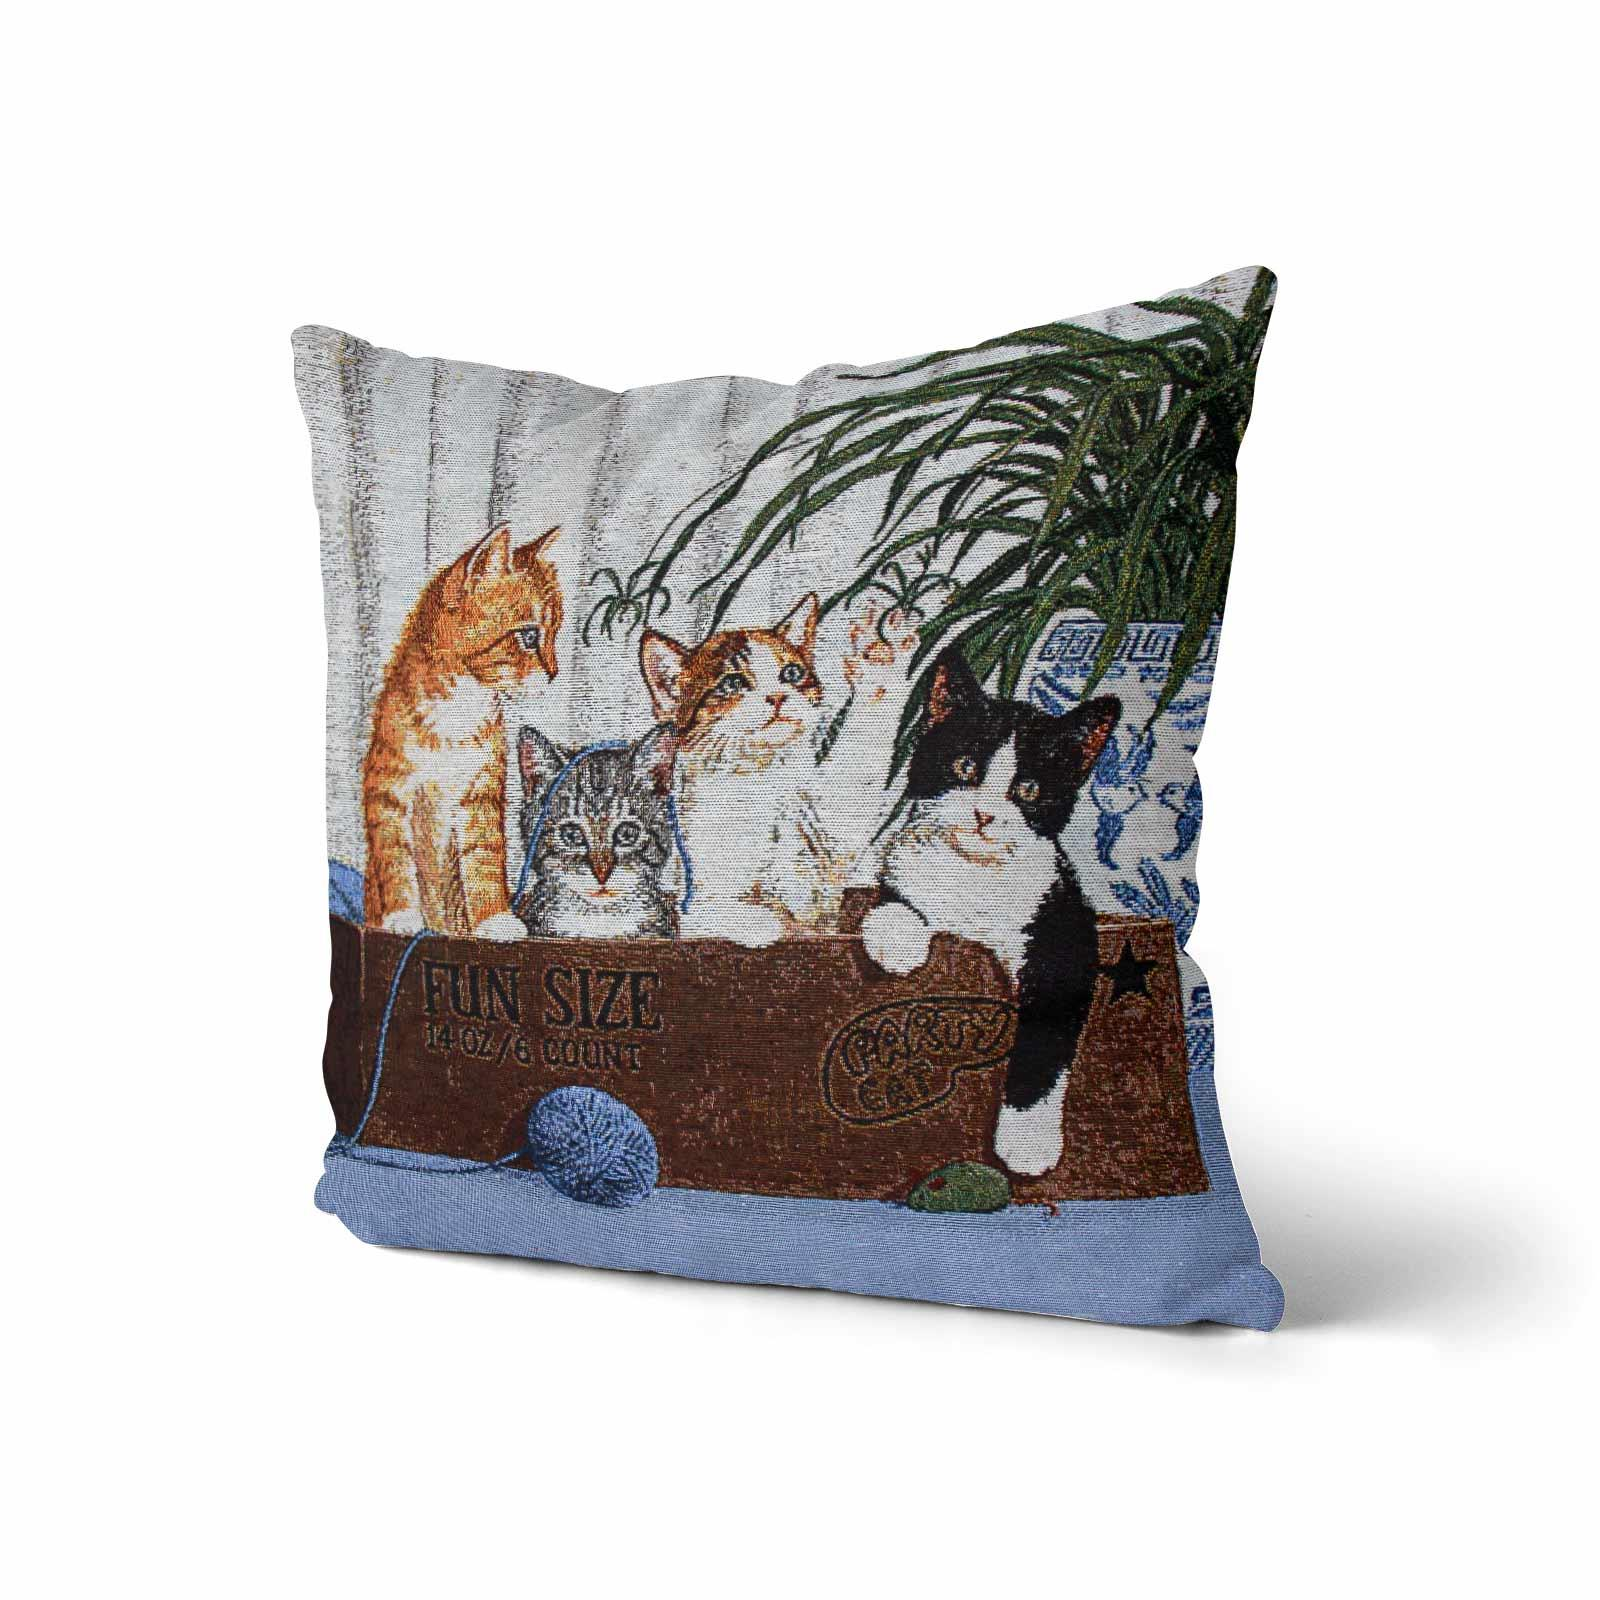 Tapestry-Cushion-Covers-Vintage-Pillow-Cover-Collection-18-034-45cm-Filled-Cushions thumbnail 99